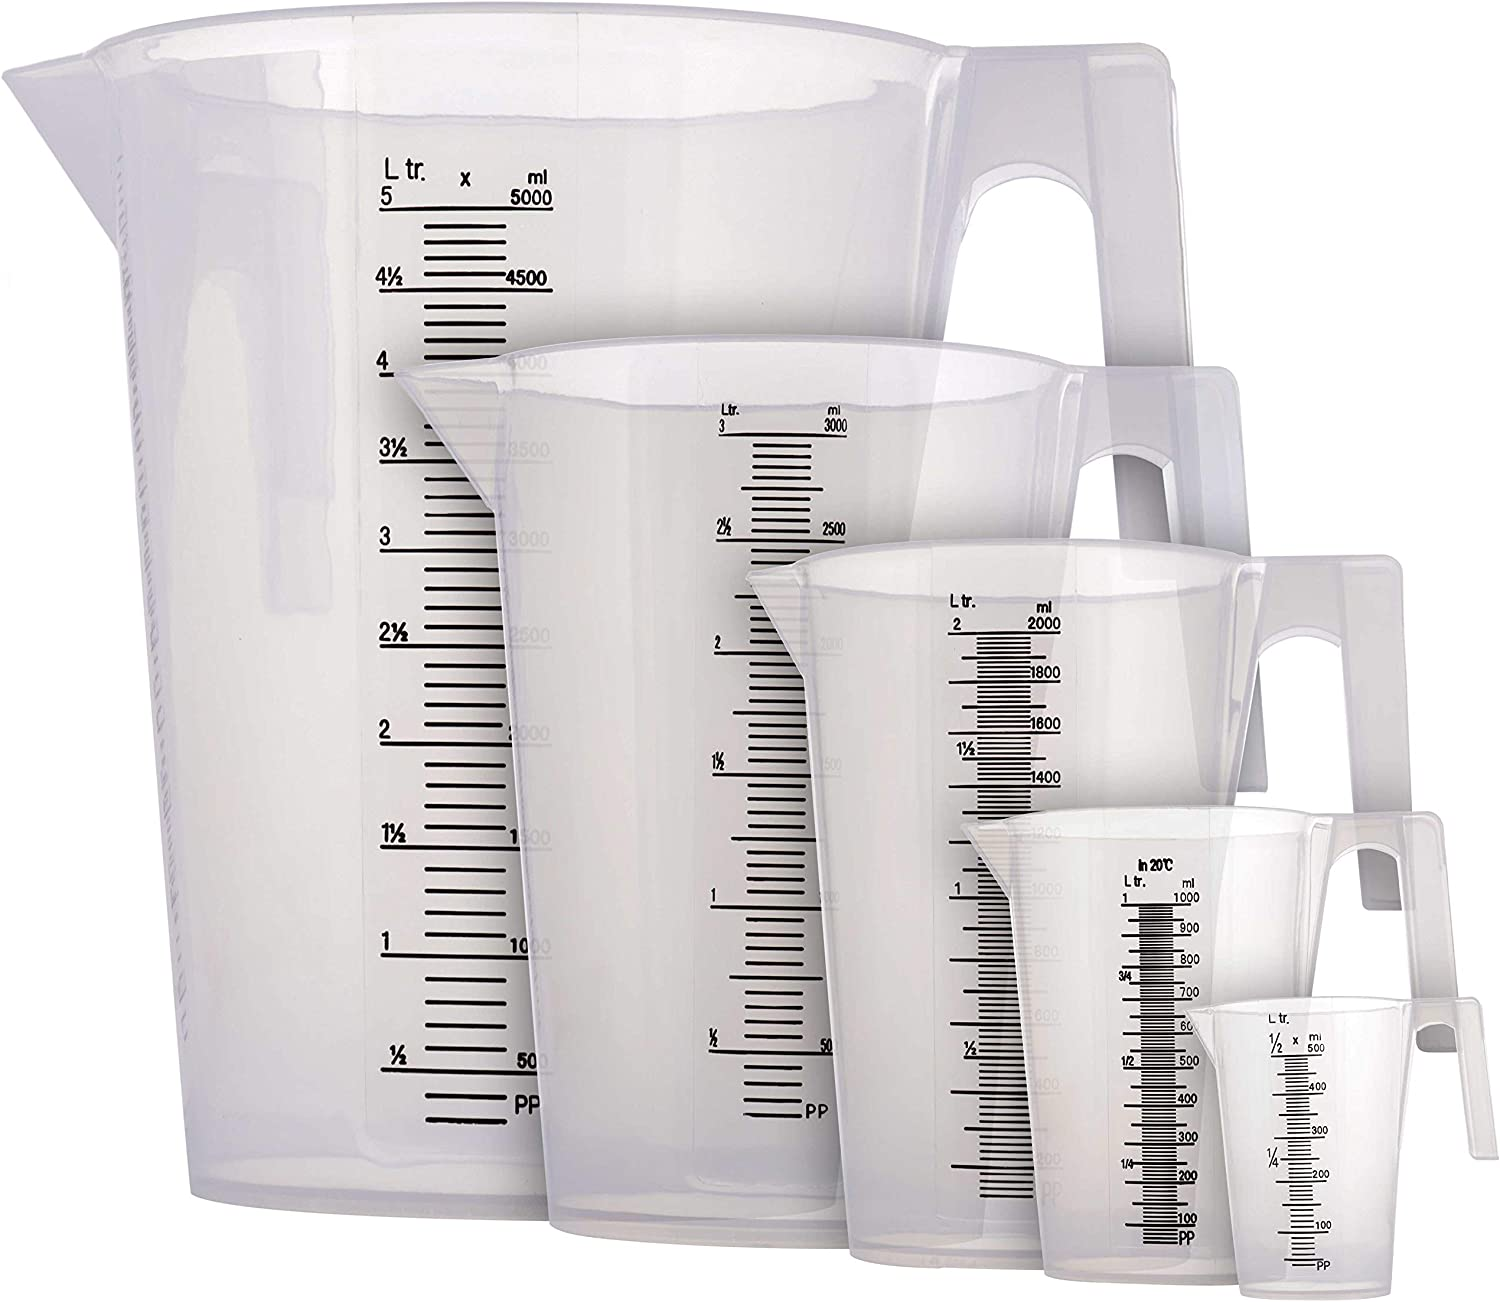 TCP Global 5 Piece Set of Plastic Graduated Measuring and Mixing Pitchers - 500, 1000, 2000, 3000, 5000 ml Sizes - Pouring Cups, Measure & Mix Paint, Resin, Epoxy, Kitchen Cooking Baking Ingredients